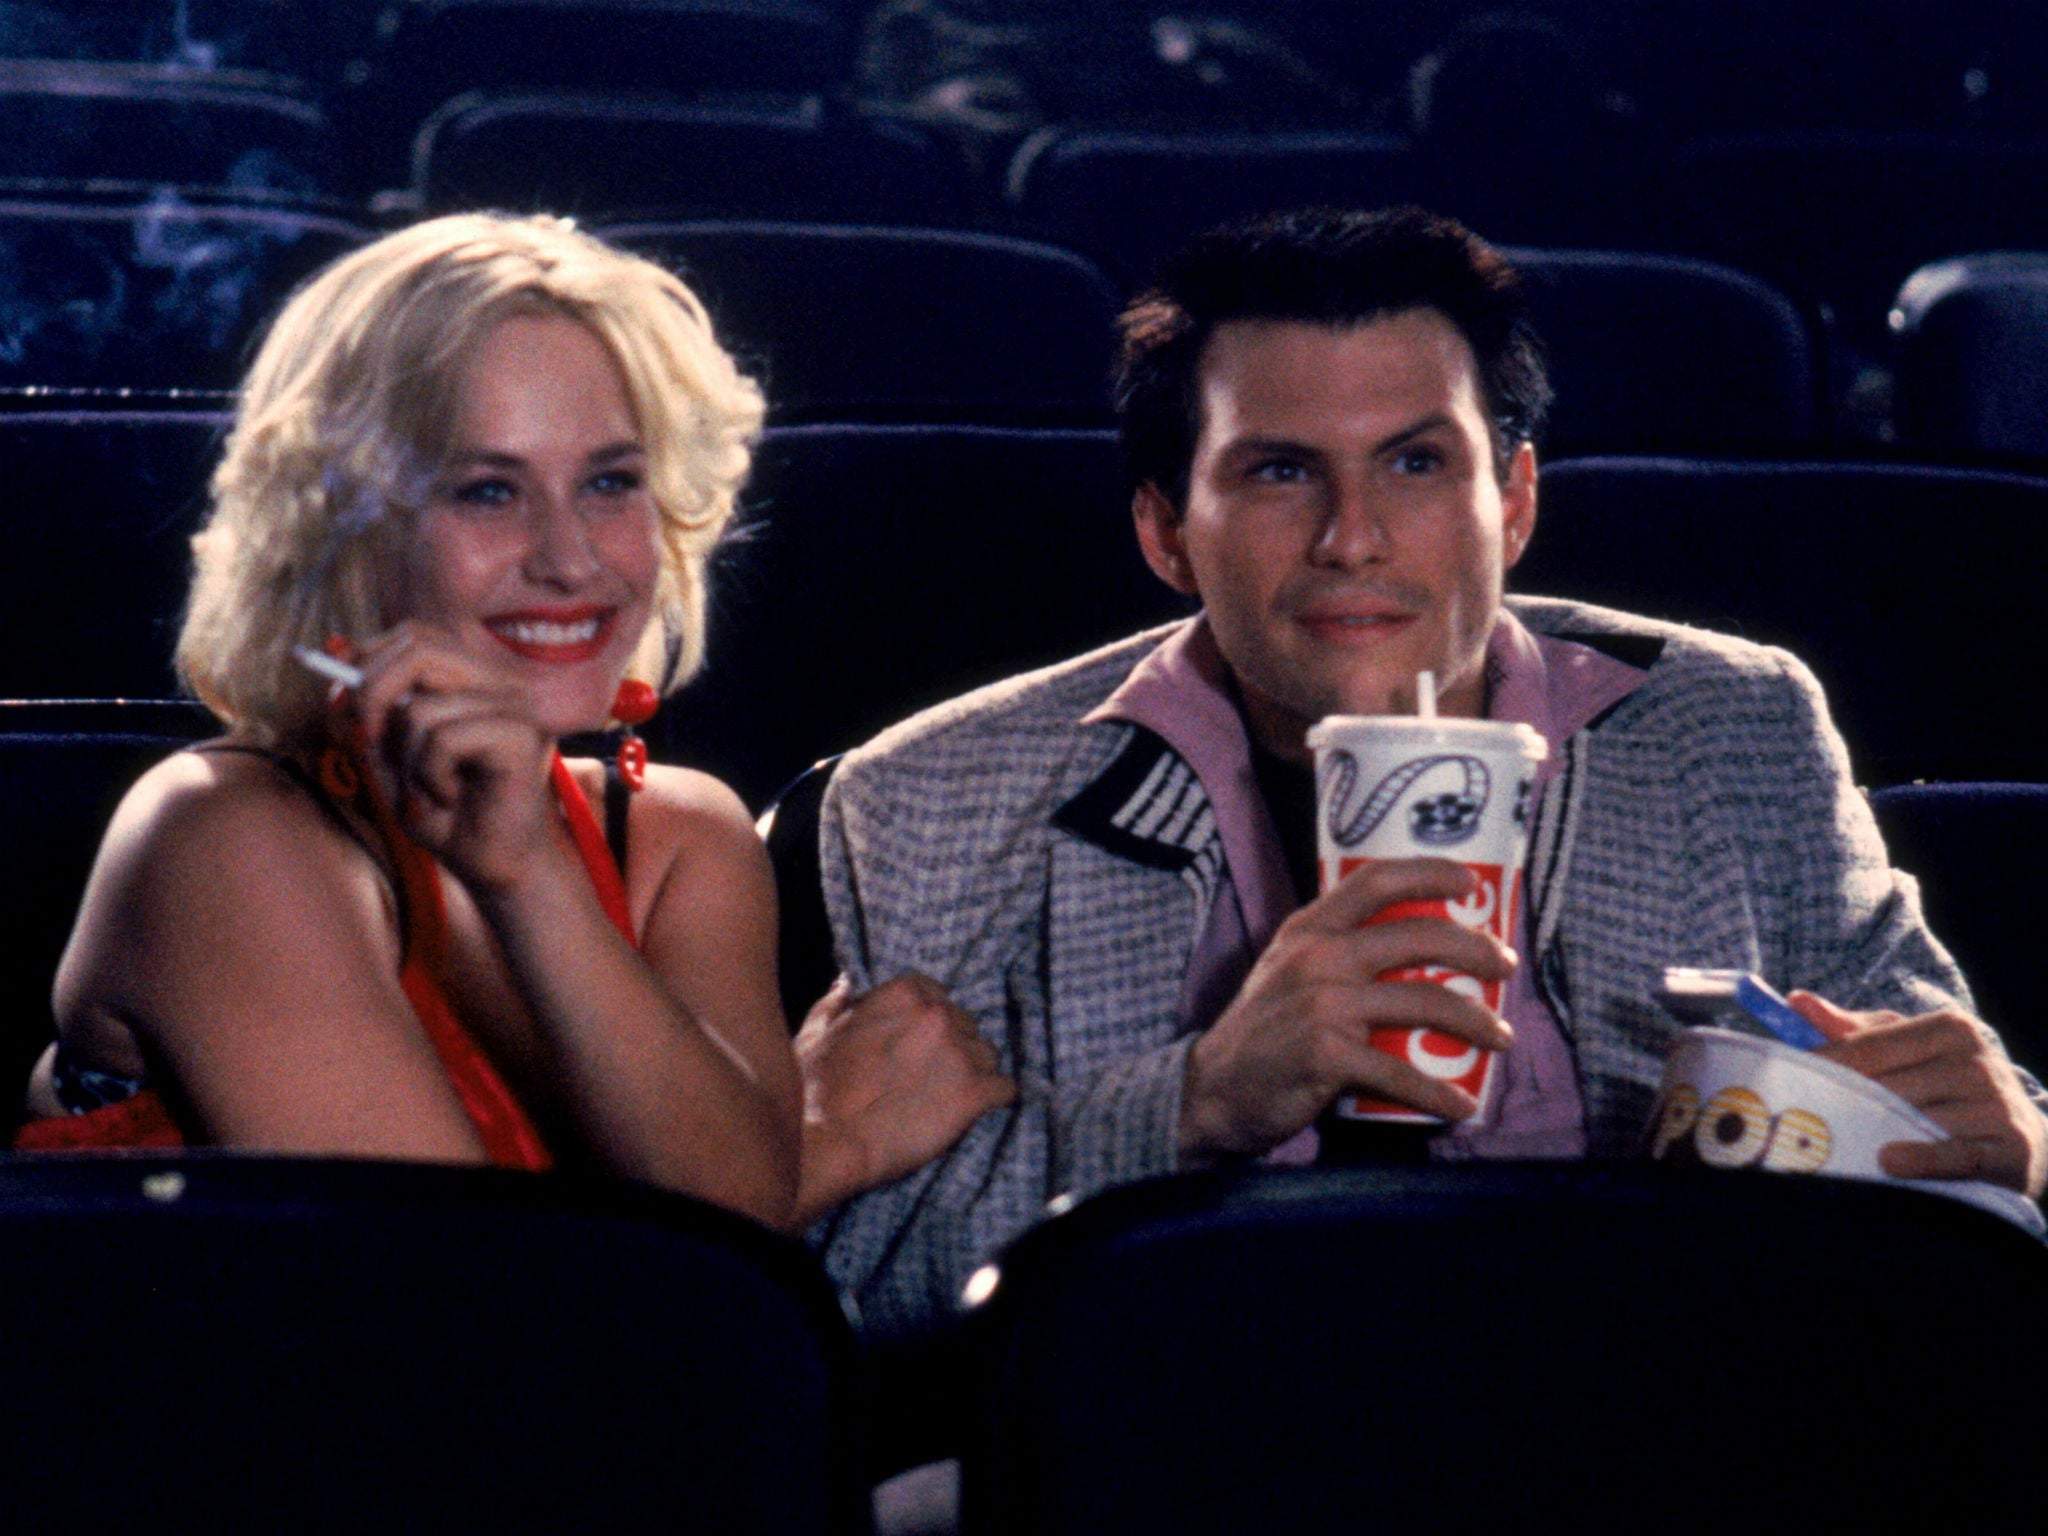 You're so cool: True Romance is Quentin Tarantino's masterpiece